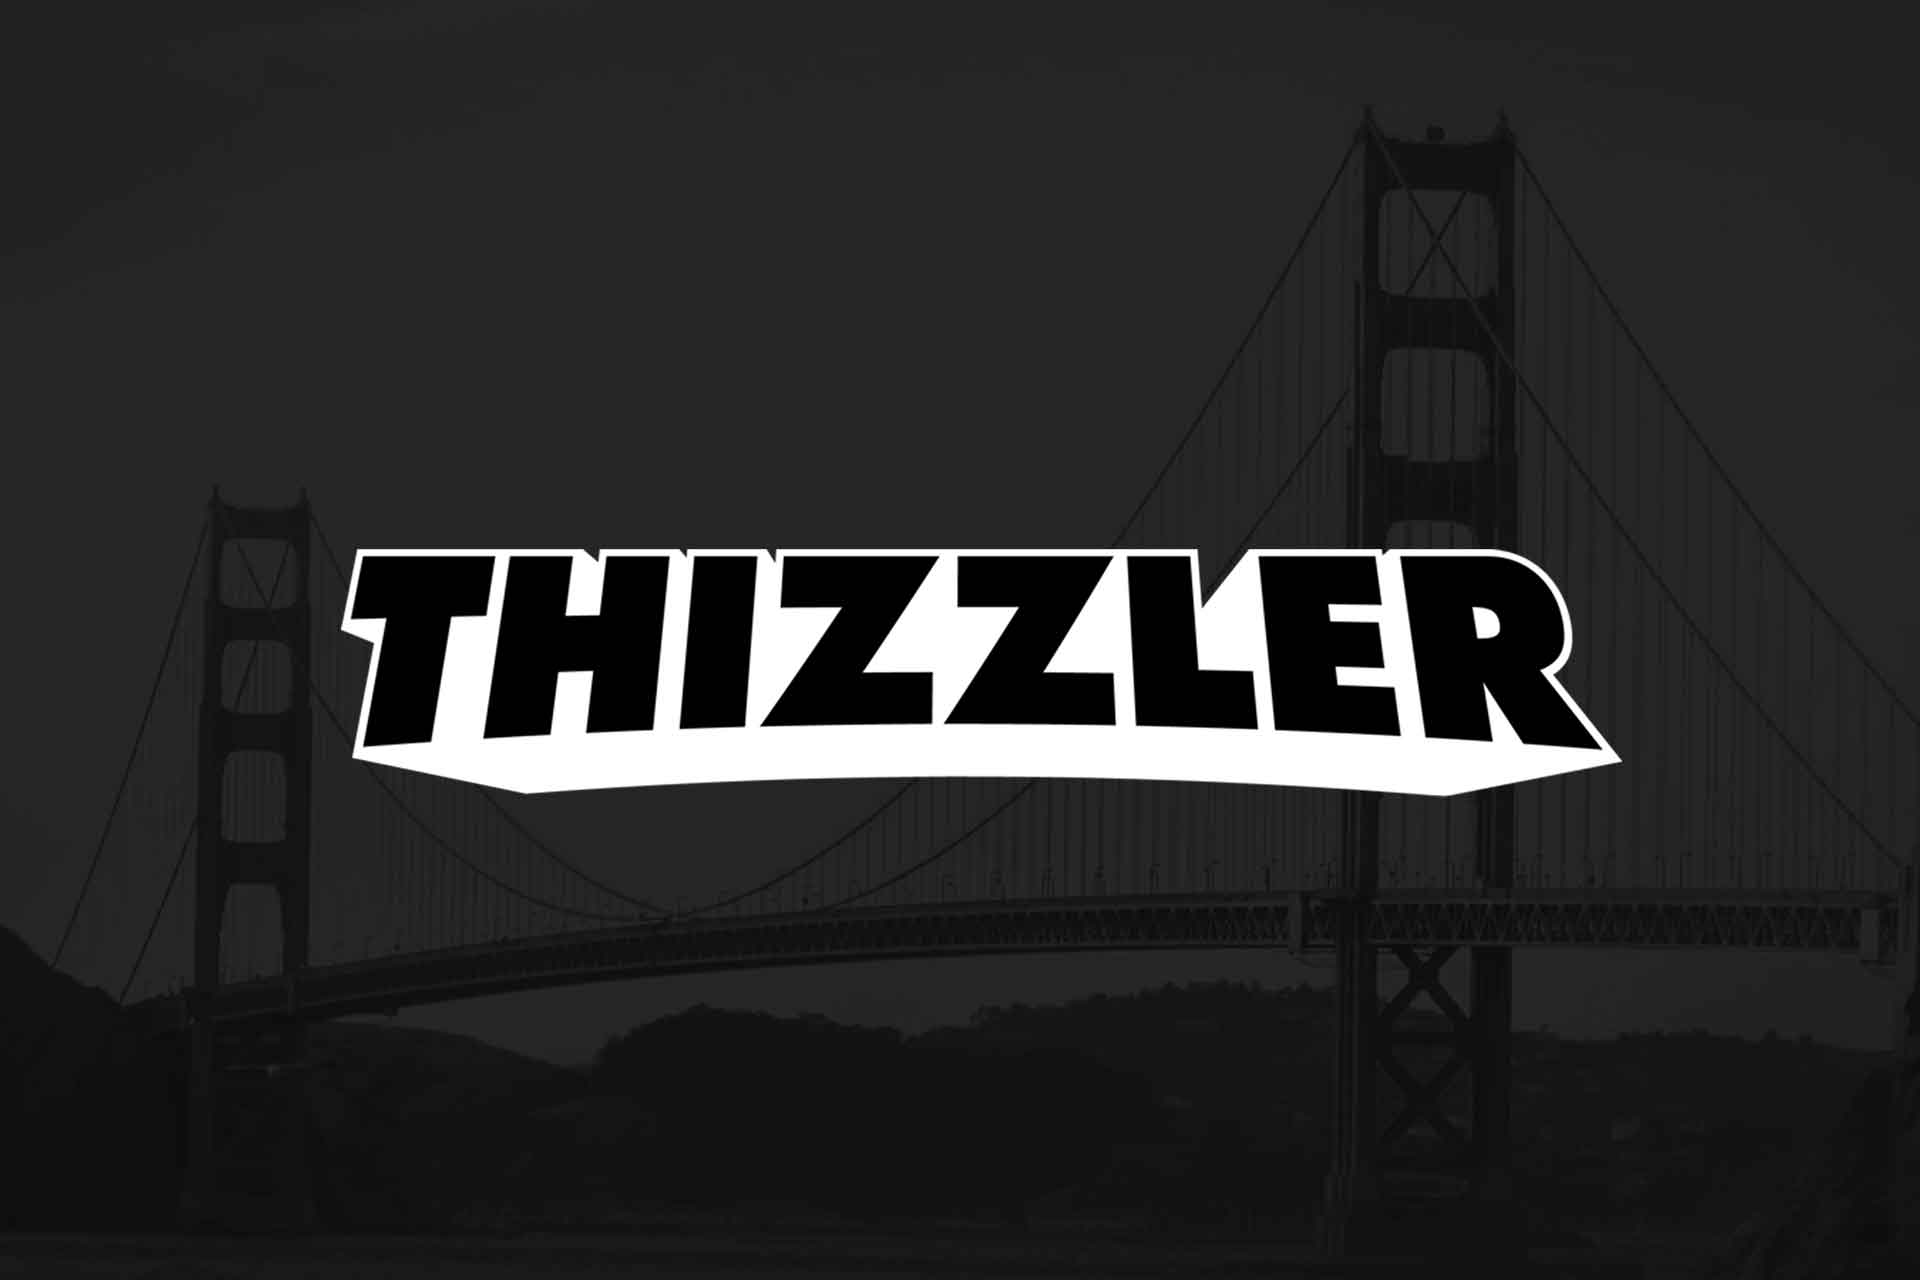 Thizzler On The Roof The Official Home For Bay Area Music